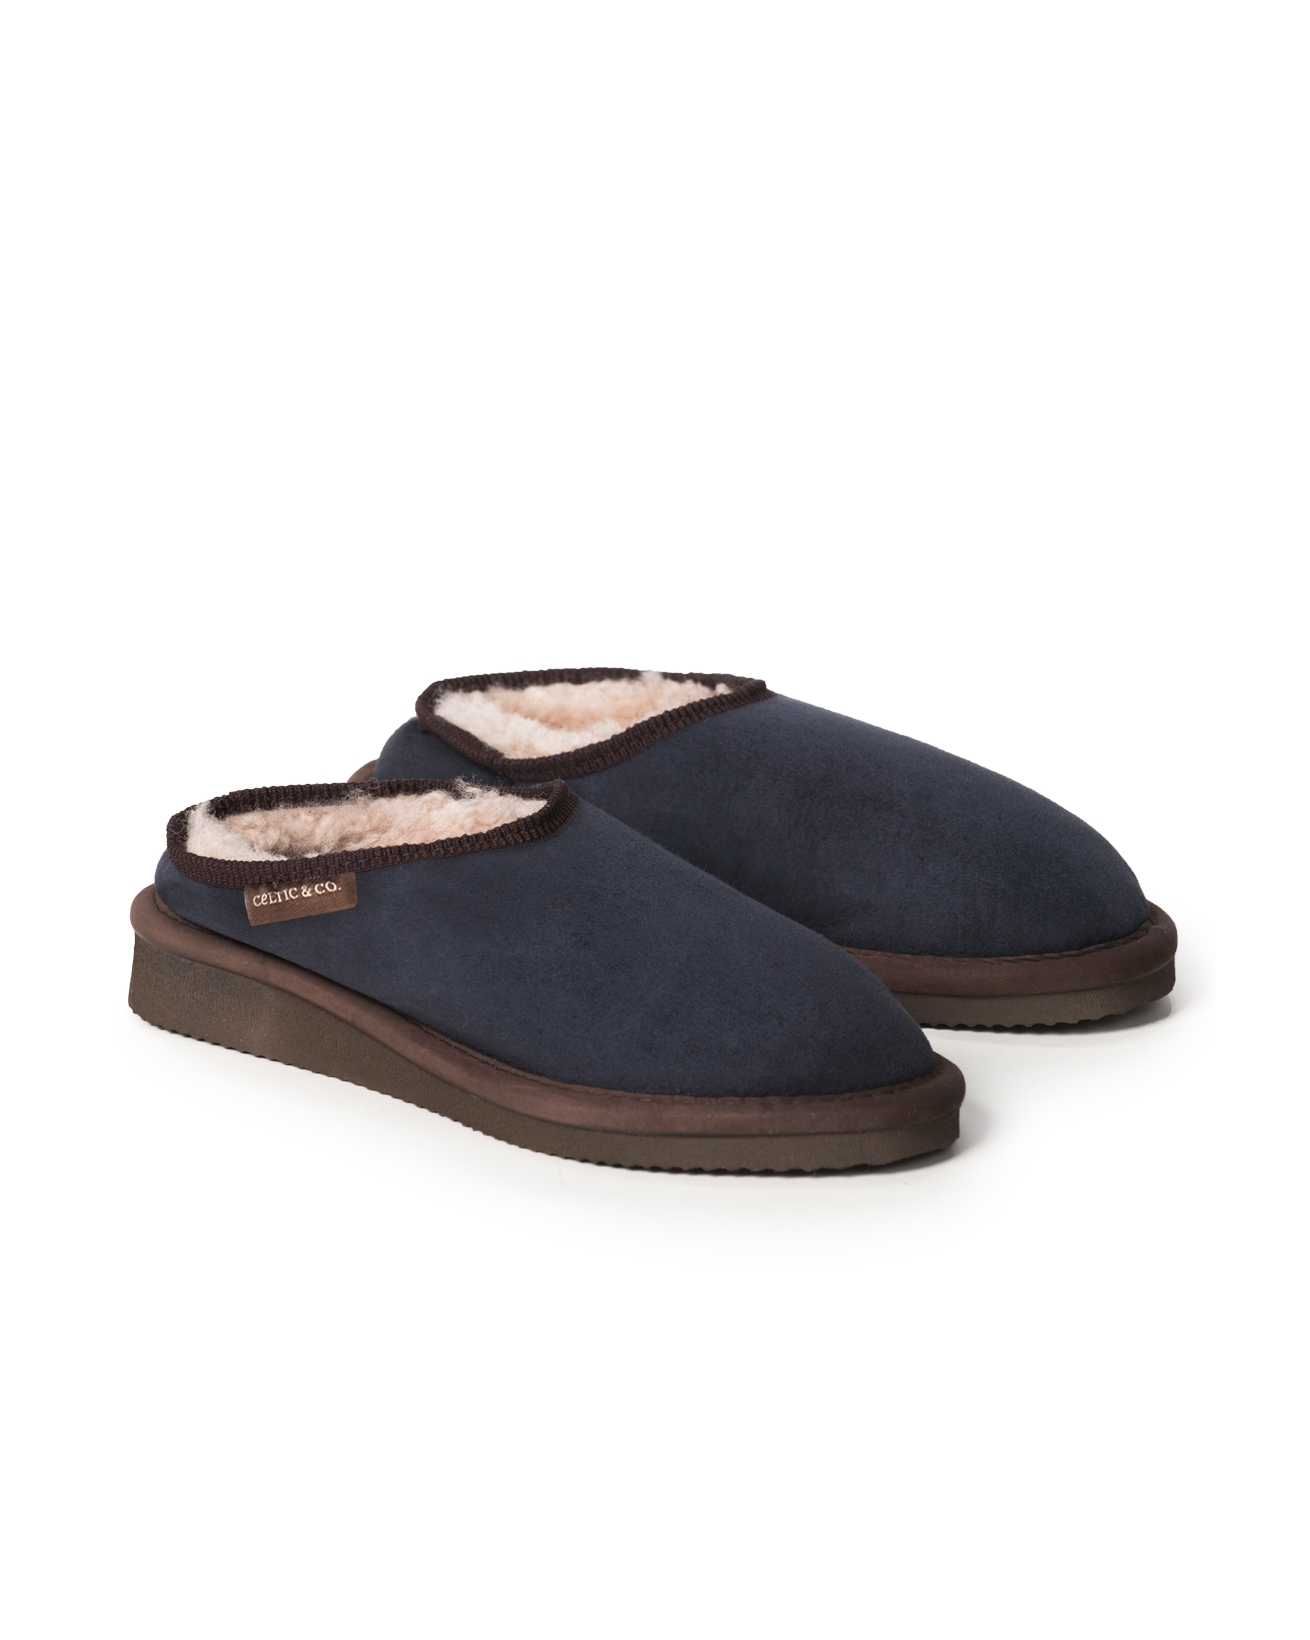 Ladies Clogs with back - Size 5 - Blue Iris - 2014